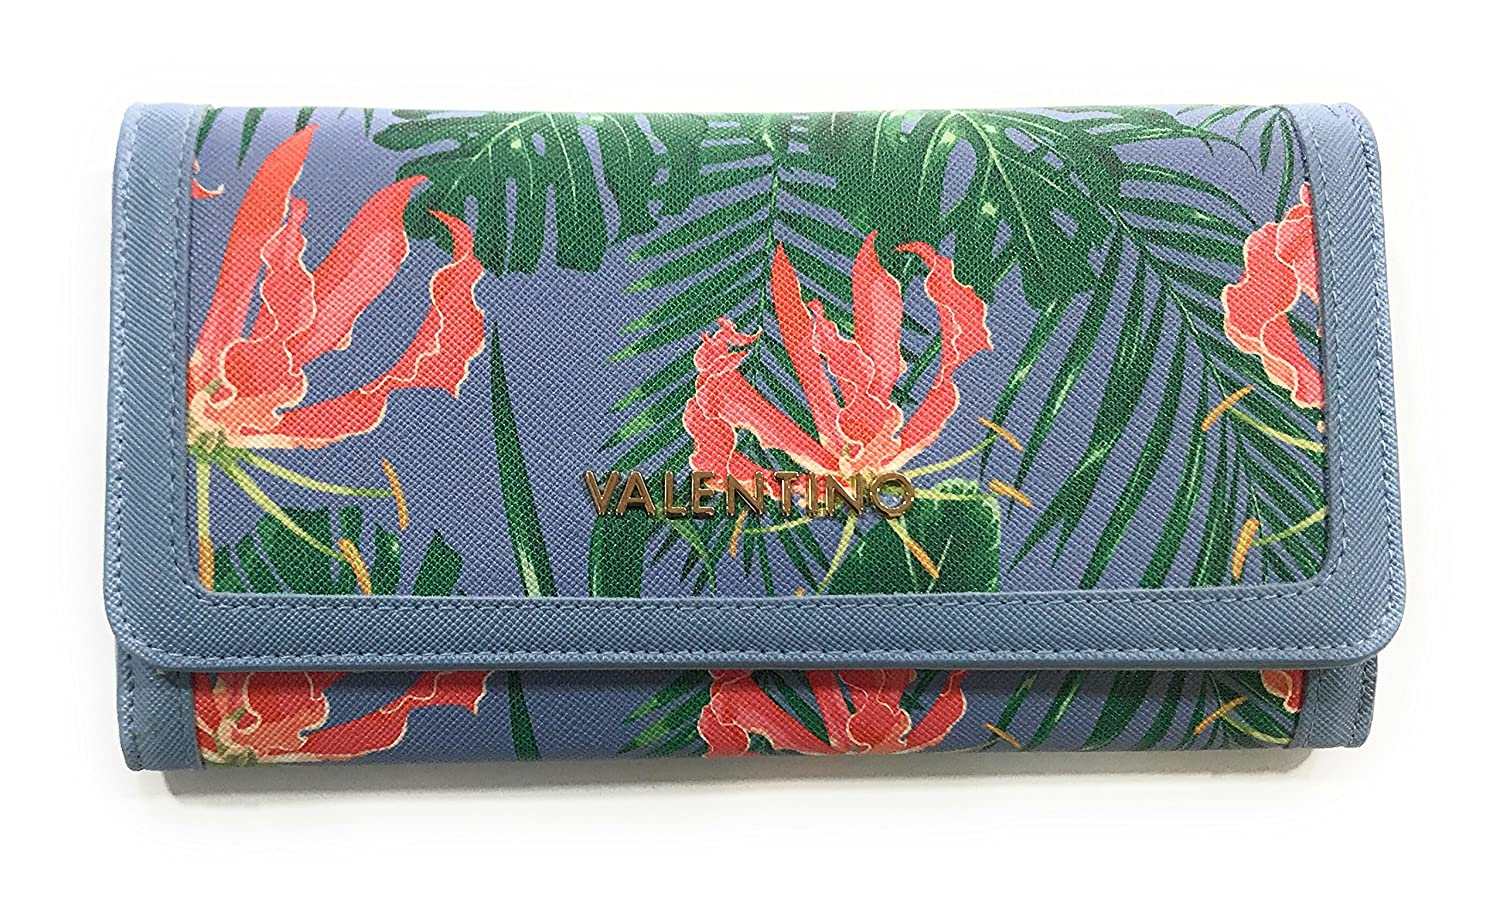 Cartera Valentino Atlantic Azul 20x11x3 cm: Amazon.es: Equipaje